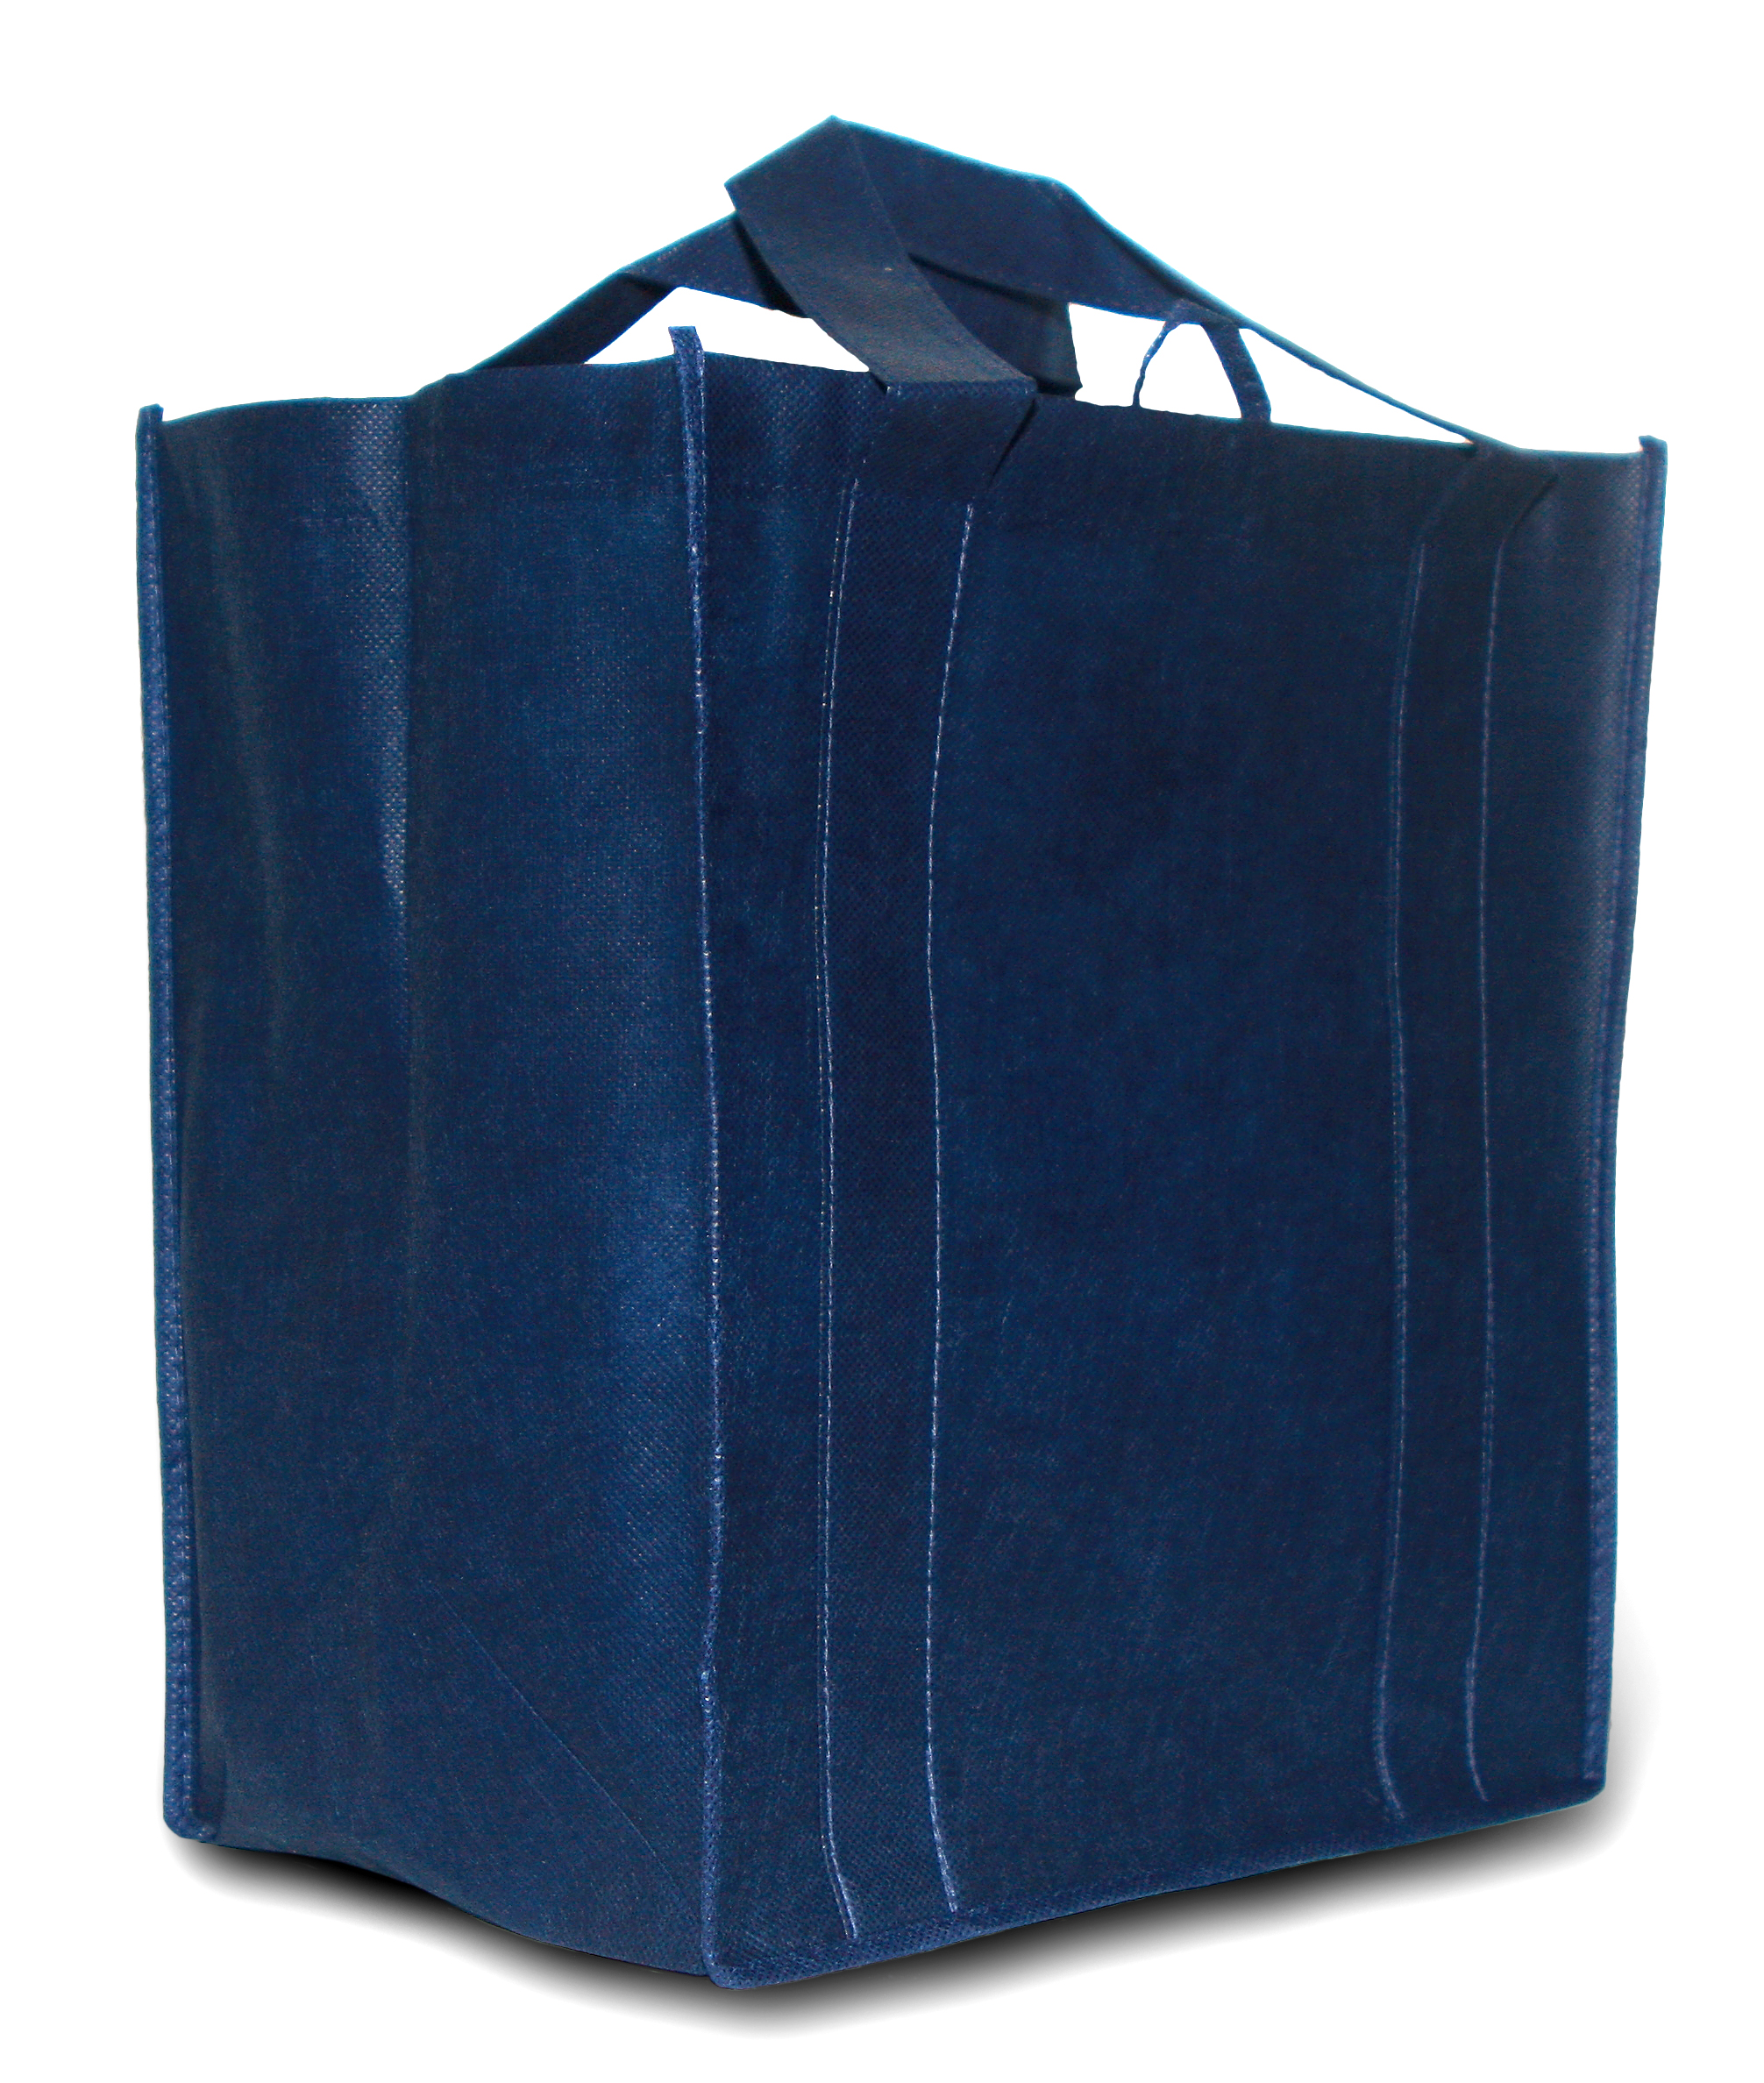 Blue_reusable_shopping_bag